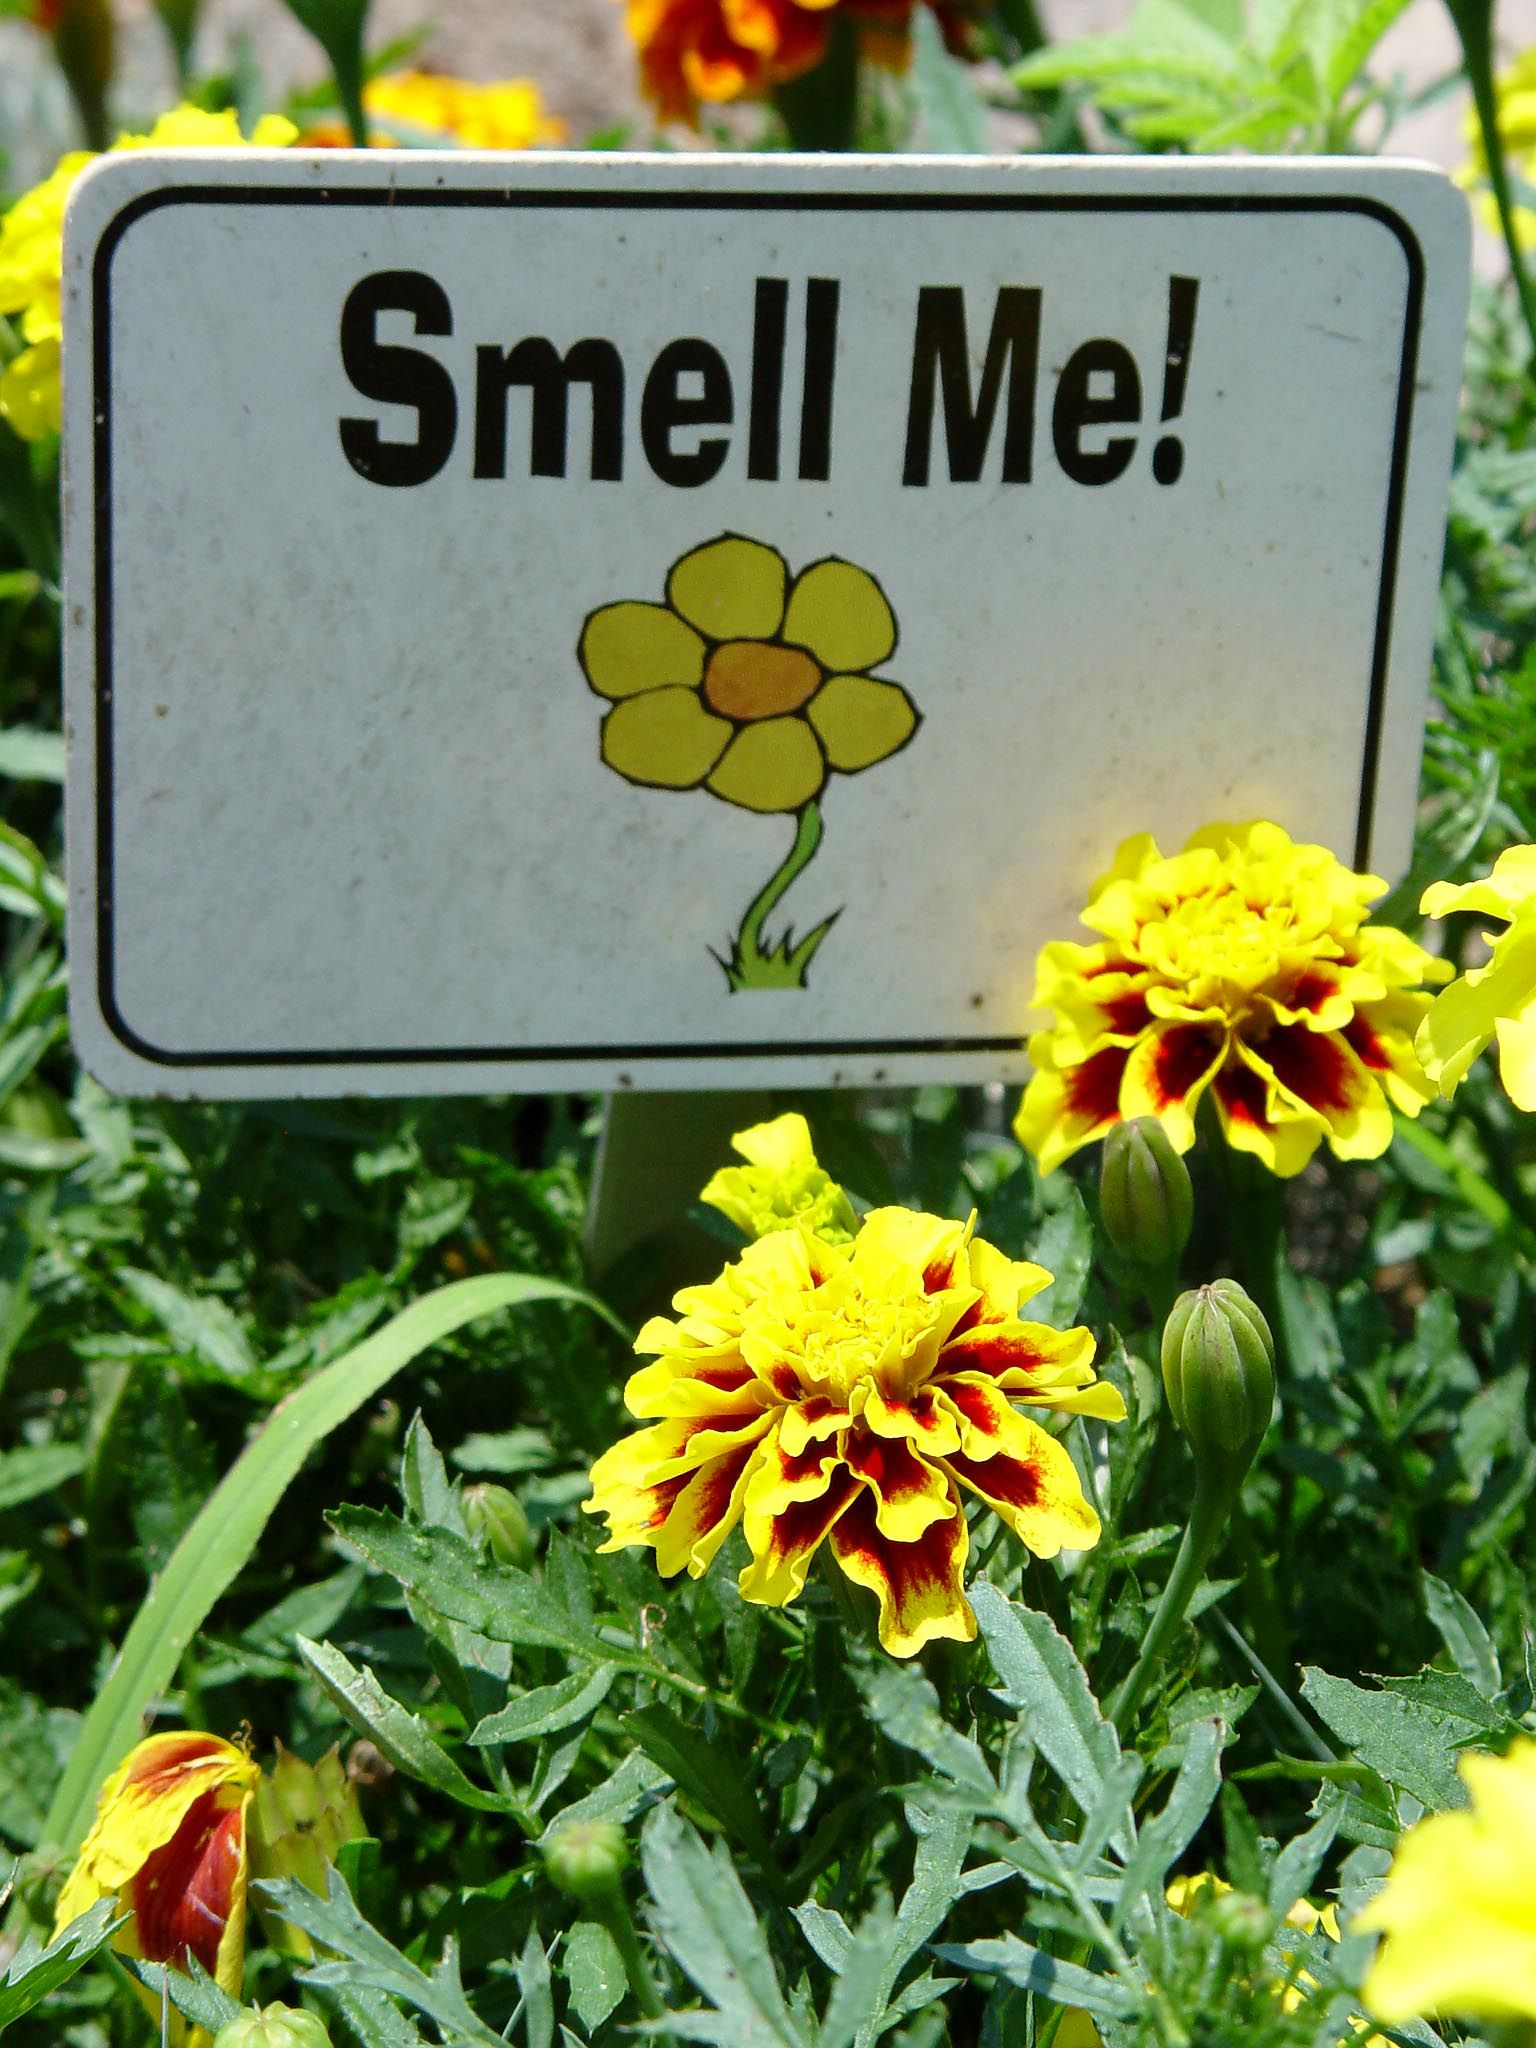 Smell Me is a friendly invitation to your sensory garden guests